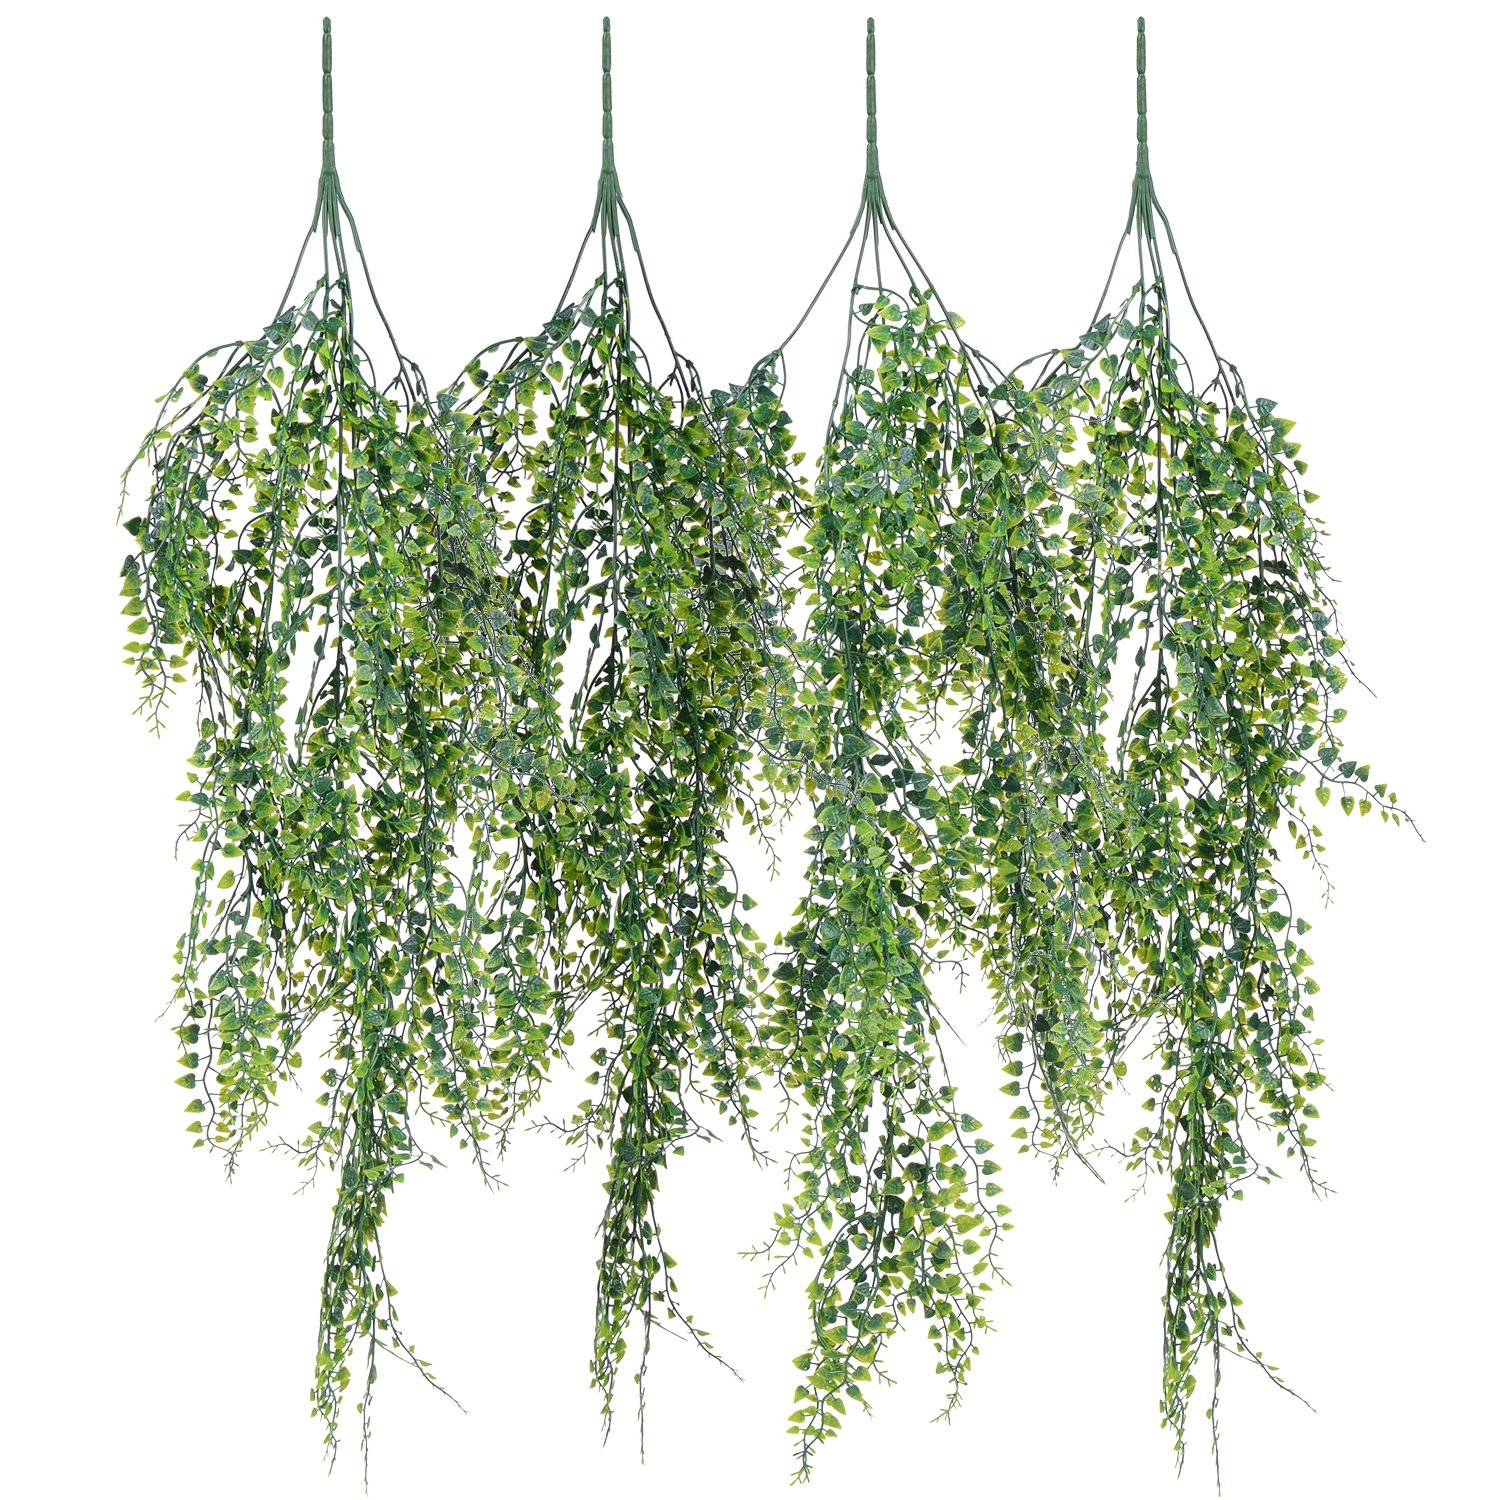 Artiflr 4 Pack Artificial Wall hanging plants Artificial Ivy Fake Hanging Vine Plants Decor Plastic Greenery for Home Wall Indoor Outdside